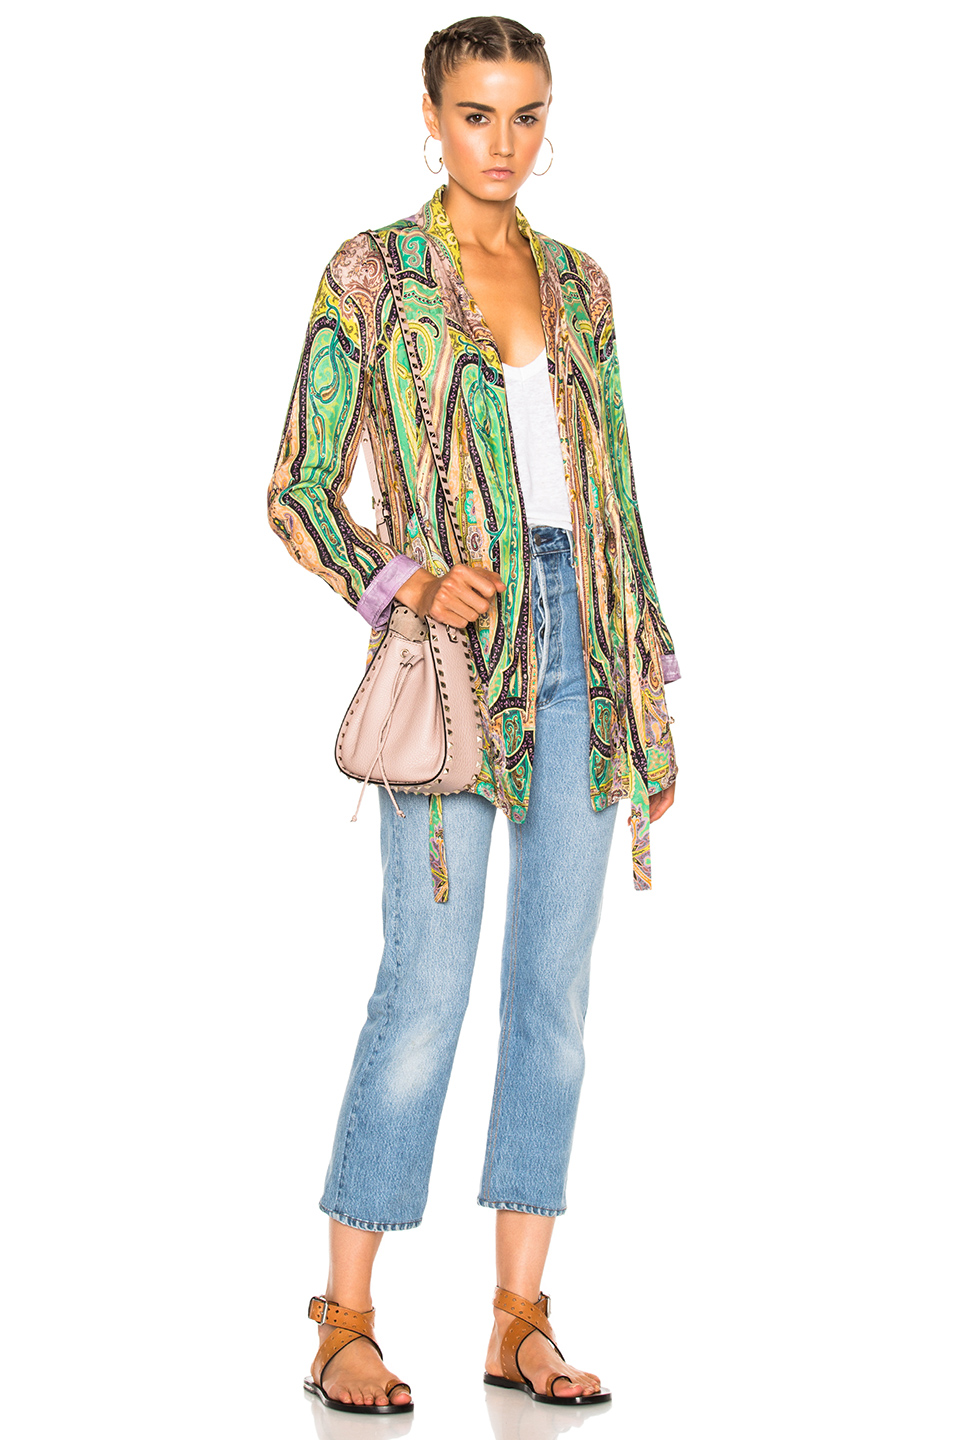 Etro Violante Printed Jacket in Abstract,Green,Purple